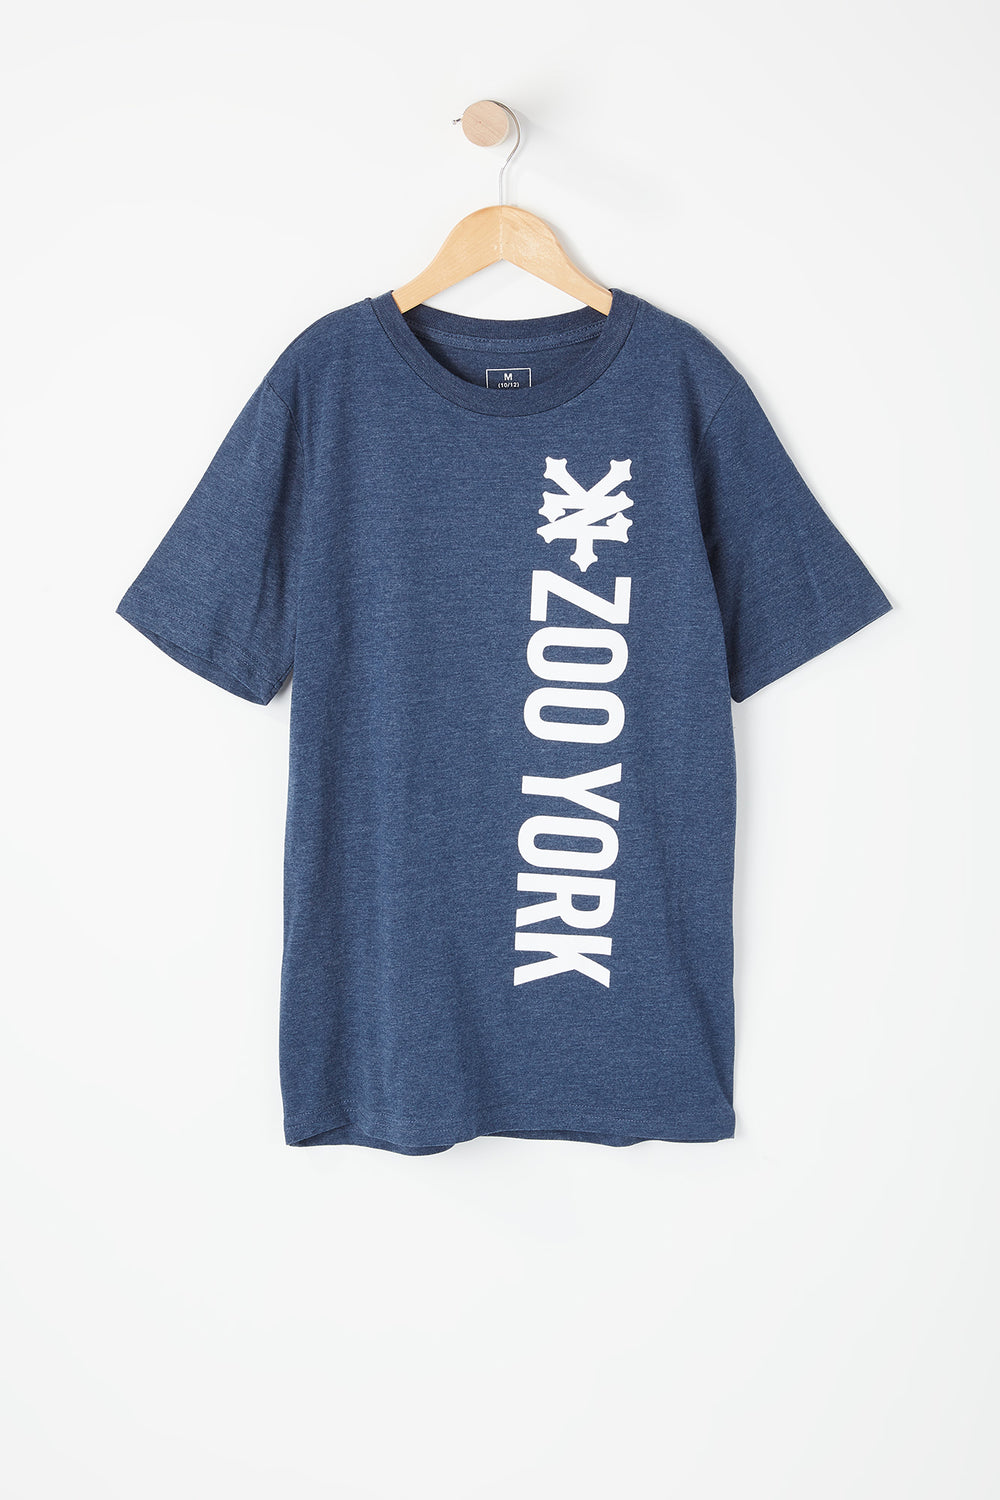 T-Shirt Imprimé Logo Zoo York Junior Bleu denim